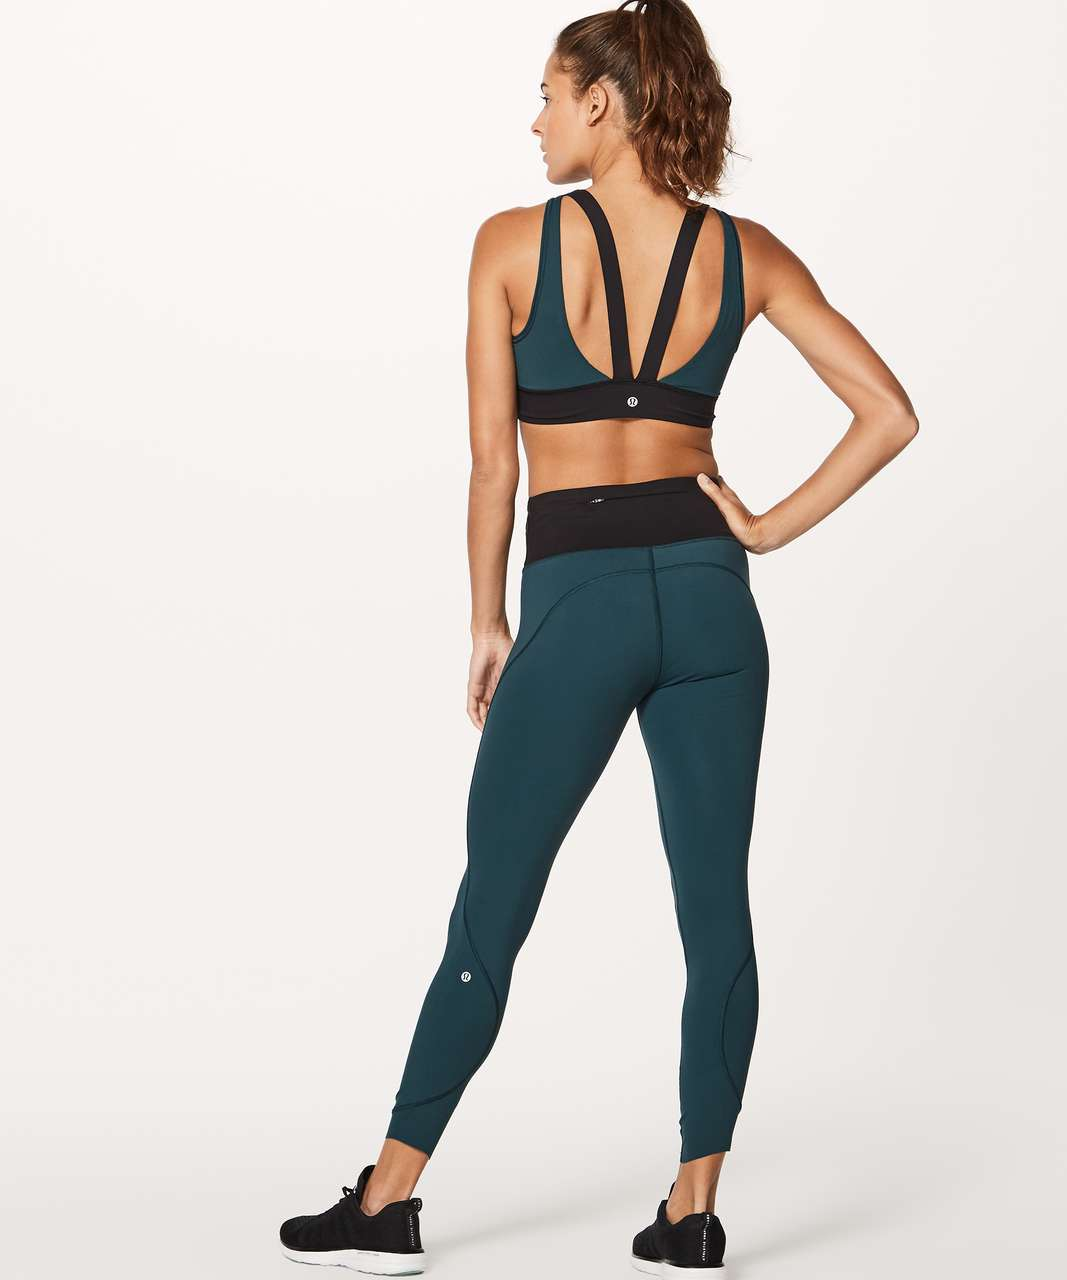 c5c62b5f4e Lululemon Run The Day 7 8 Tight (25